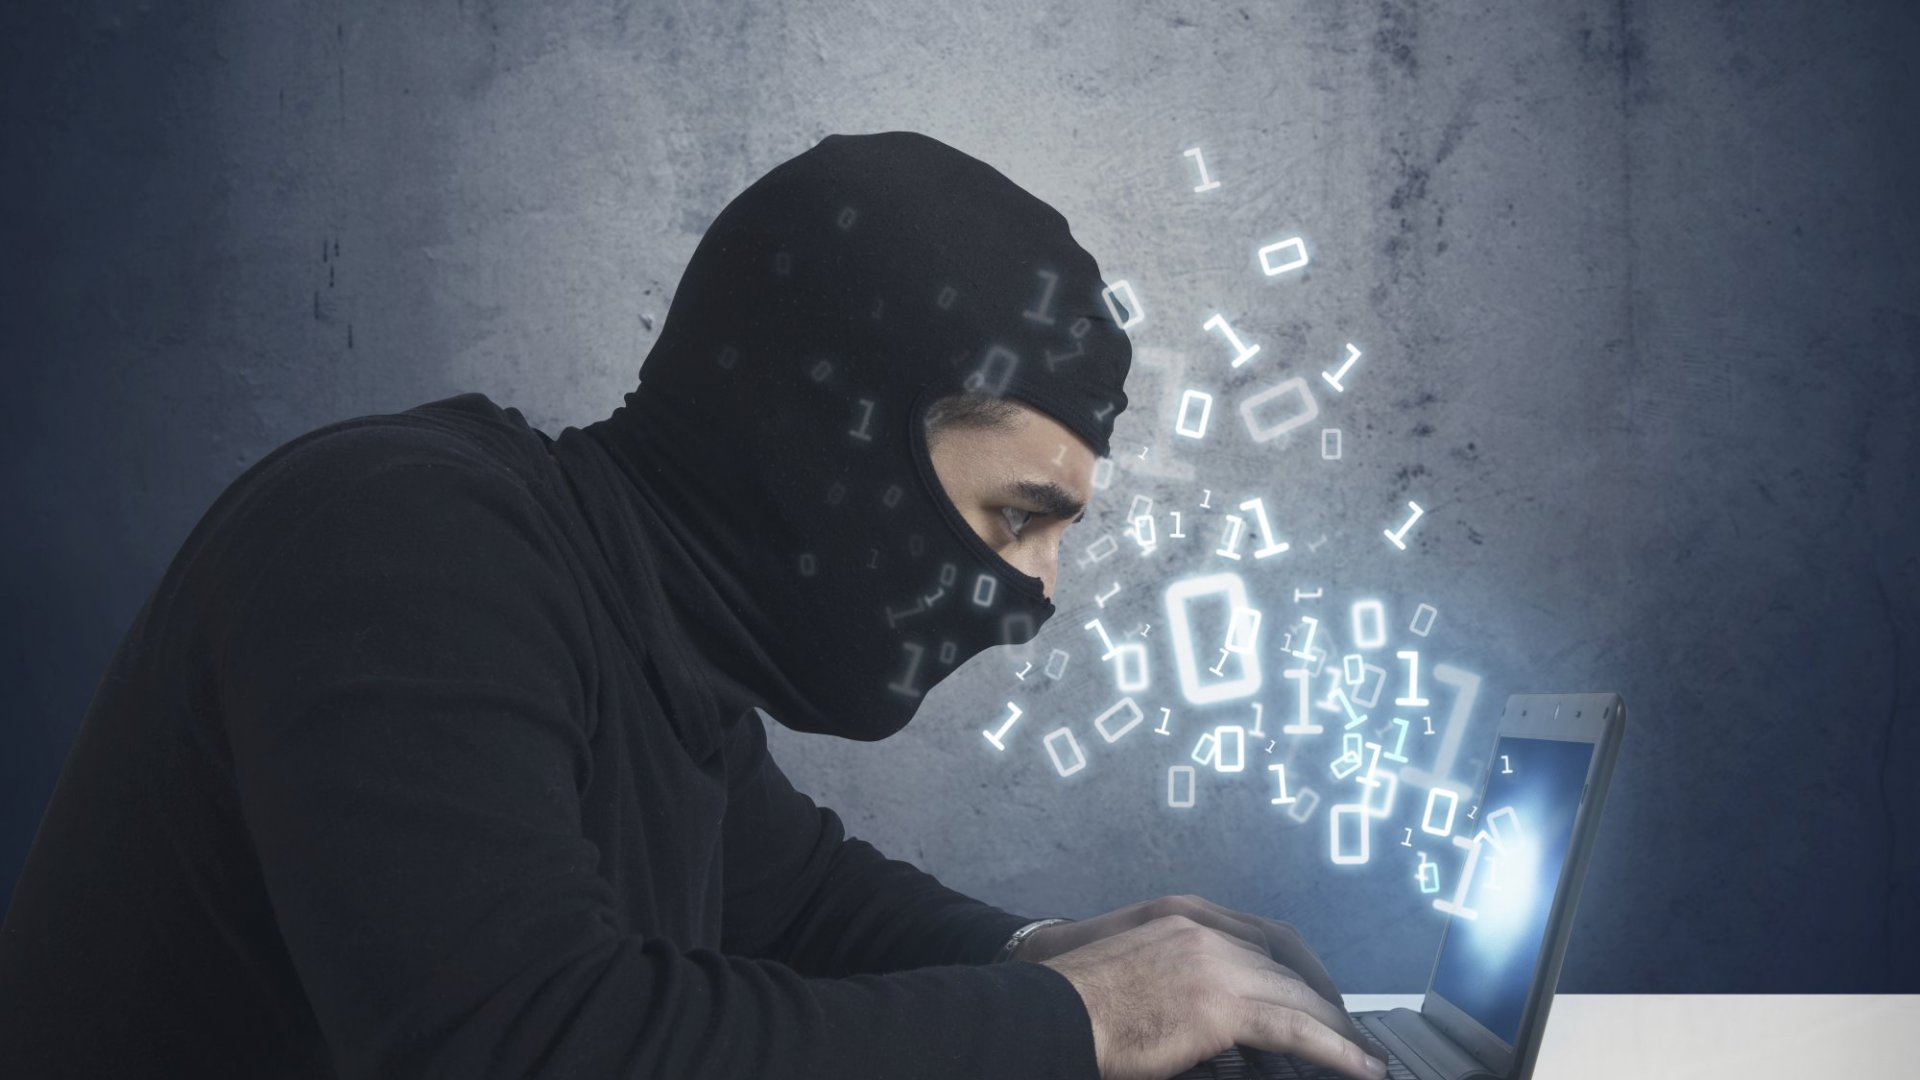 Hackers' Email Schemes Have Cost Small Businesses More Than $1 Billion